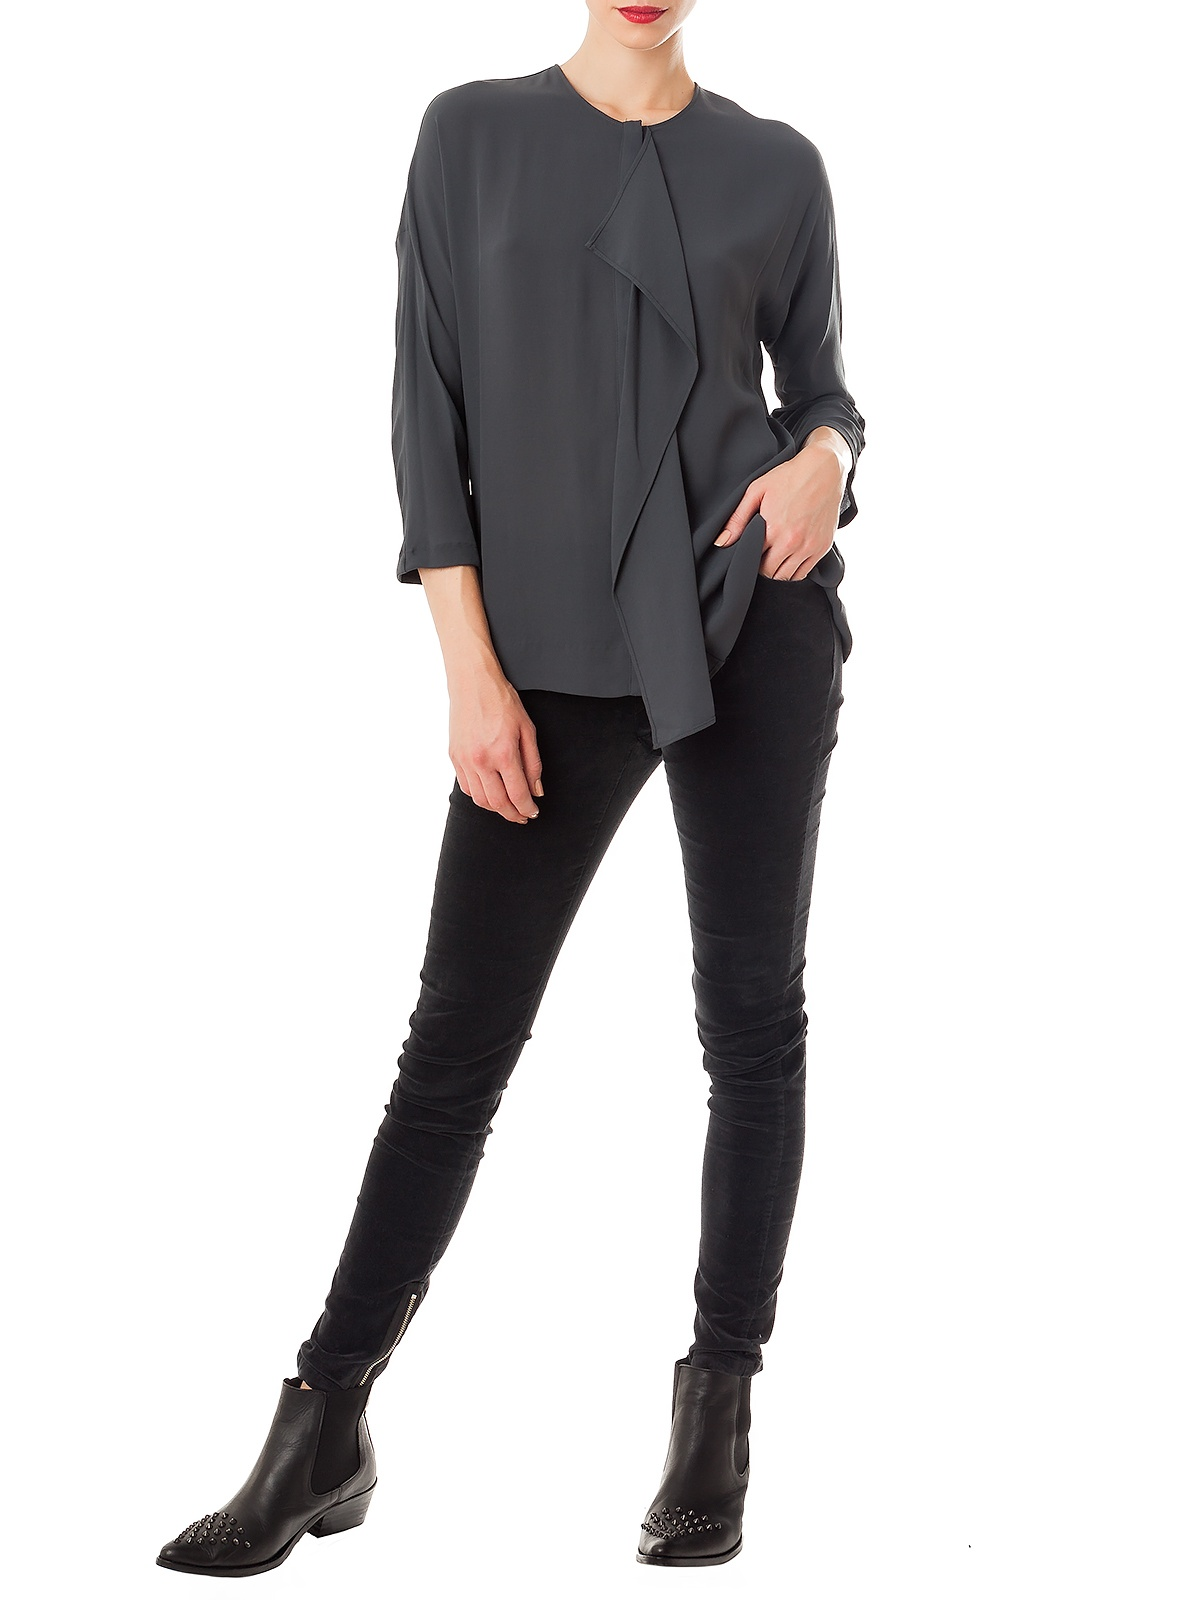 LAKEESHA GREY BLOUSE | GIRISSIMA.COM - Collectible fashion to love and to last